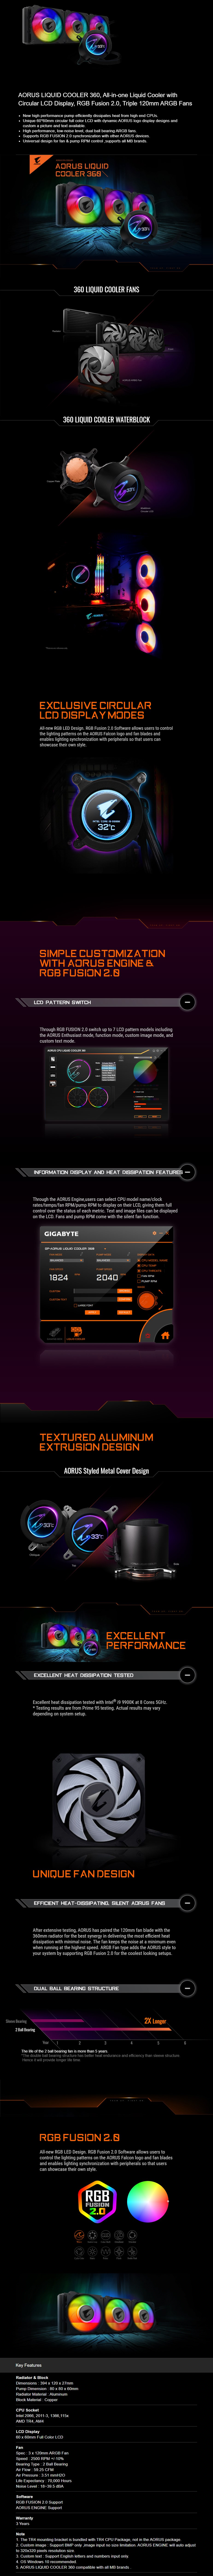 Gigabyte Aorus 360 ARGB 120mm LCD Display All-in-One Liquid CPU Cooler - Overview 1